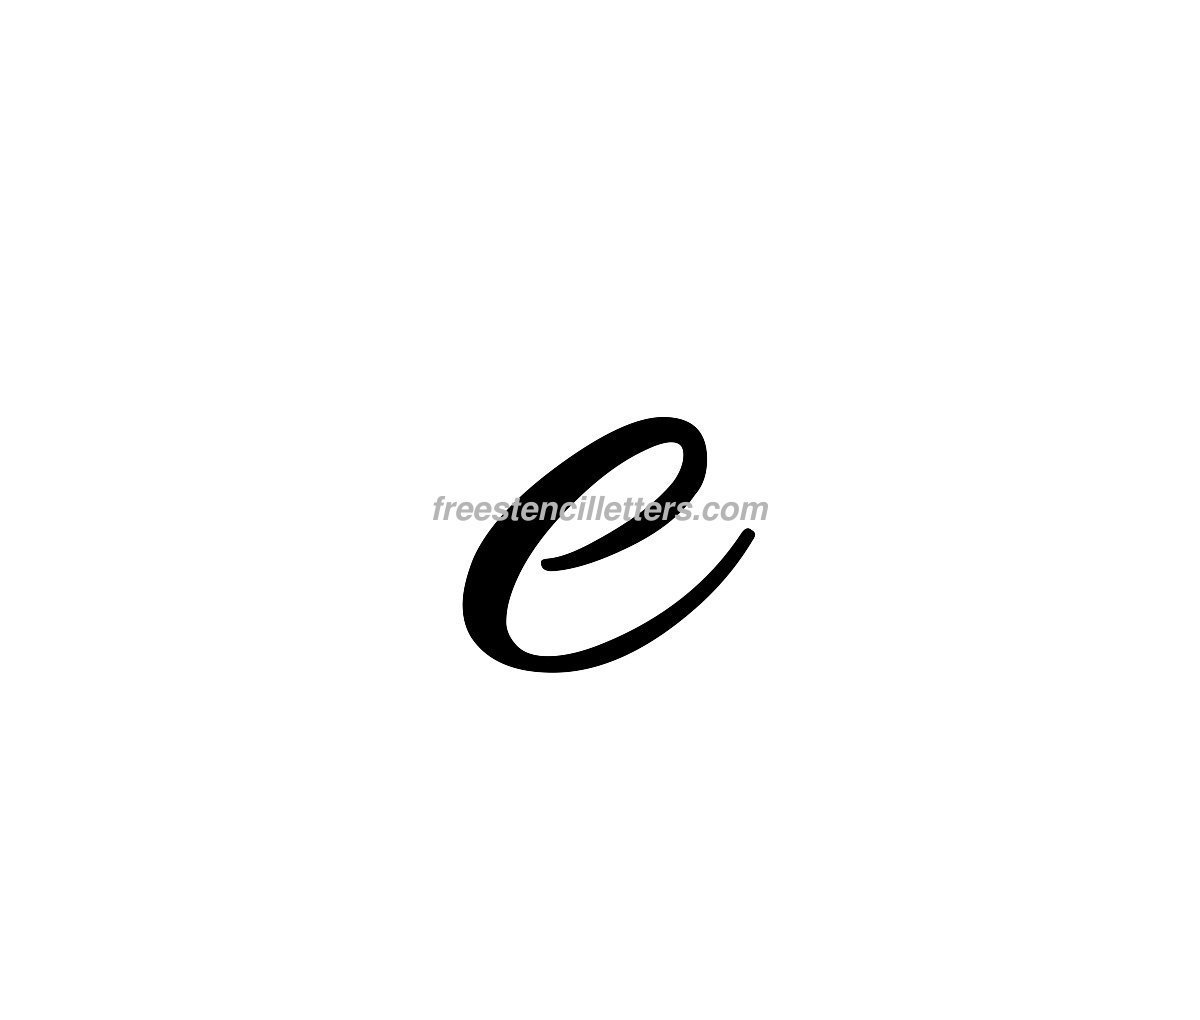 Top Block Letter Font Styles Tattoo Images For Pinterest